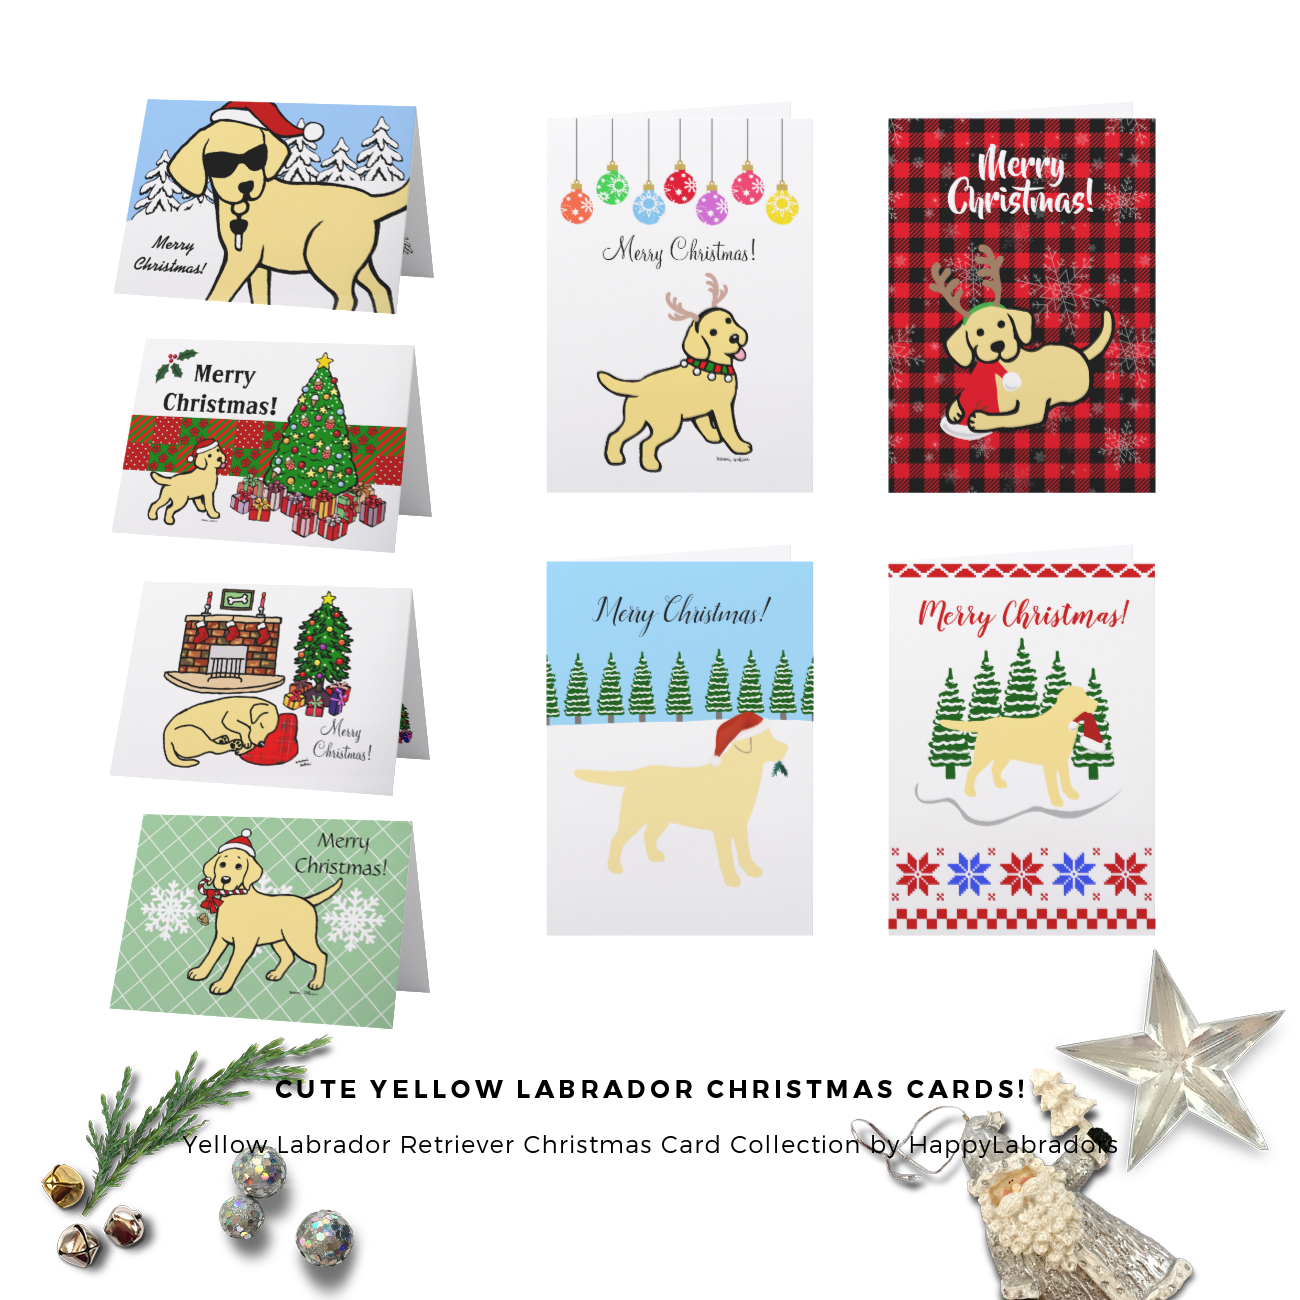 Yellow Labrador Retriever Christmas Card Collection by HappyLabradors @zazzle